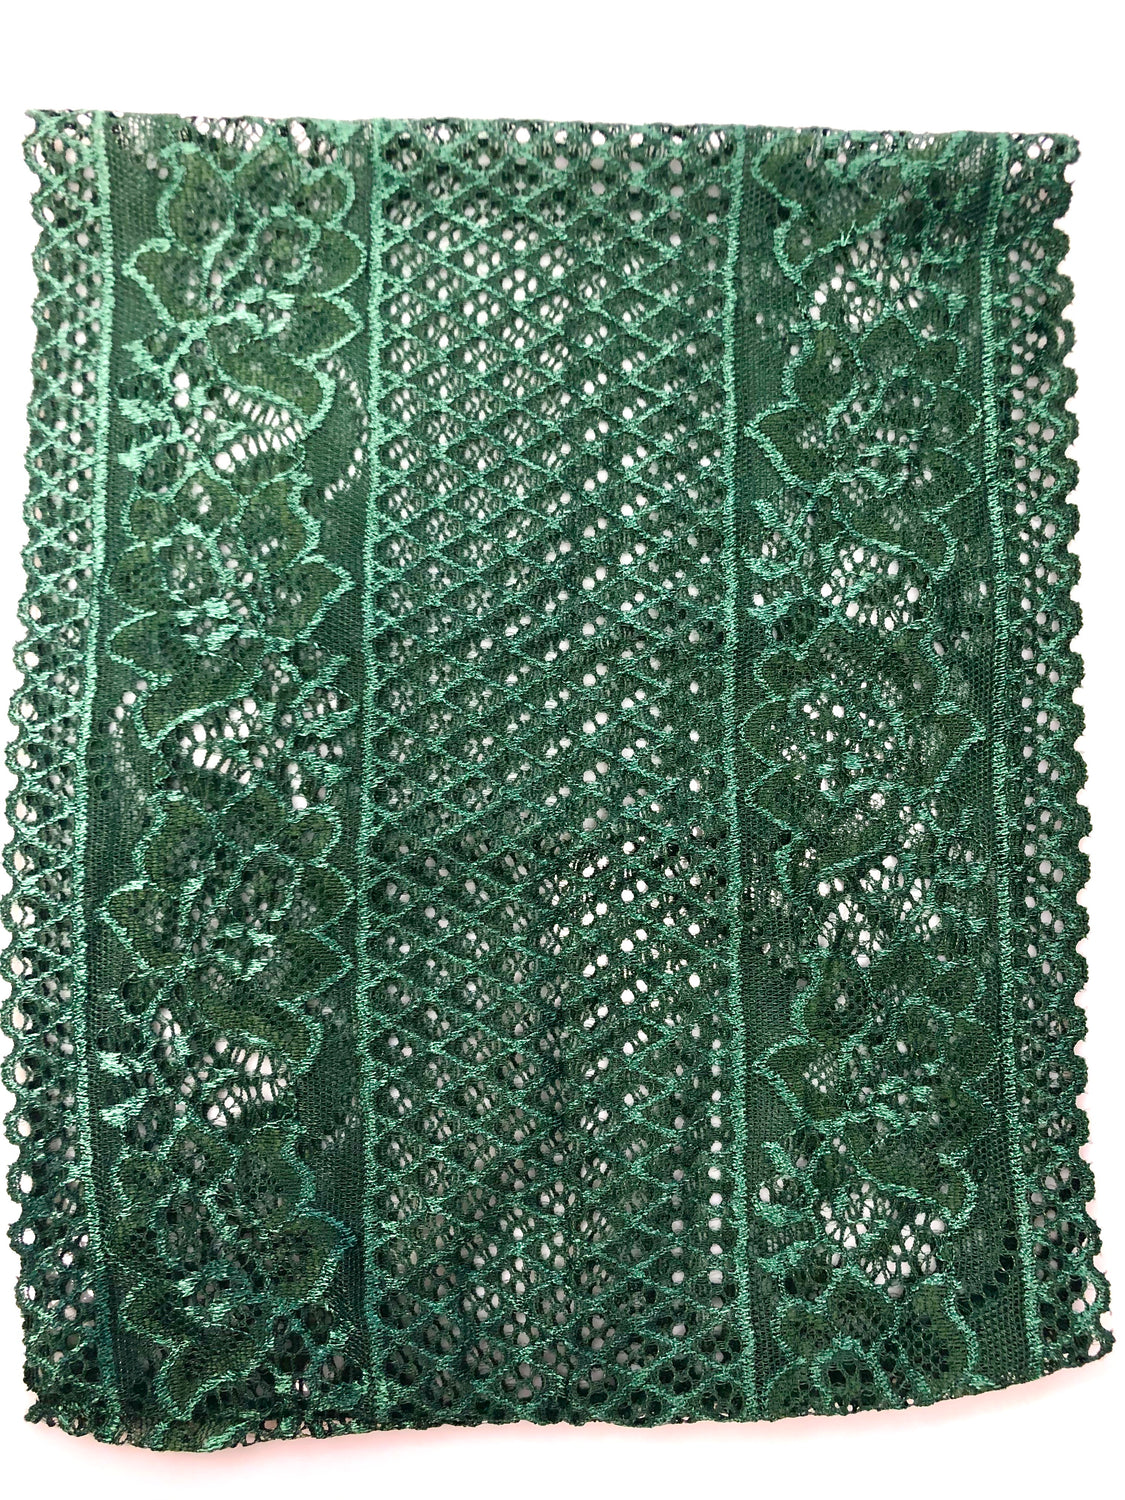 Lace Under Scarf Tube Cap - Forest Green